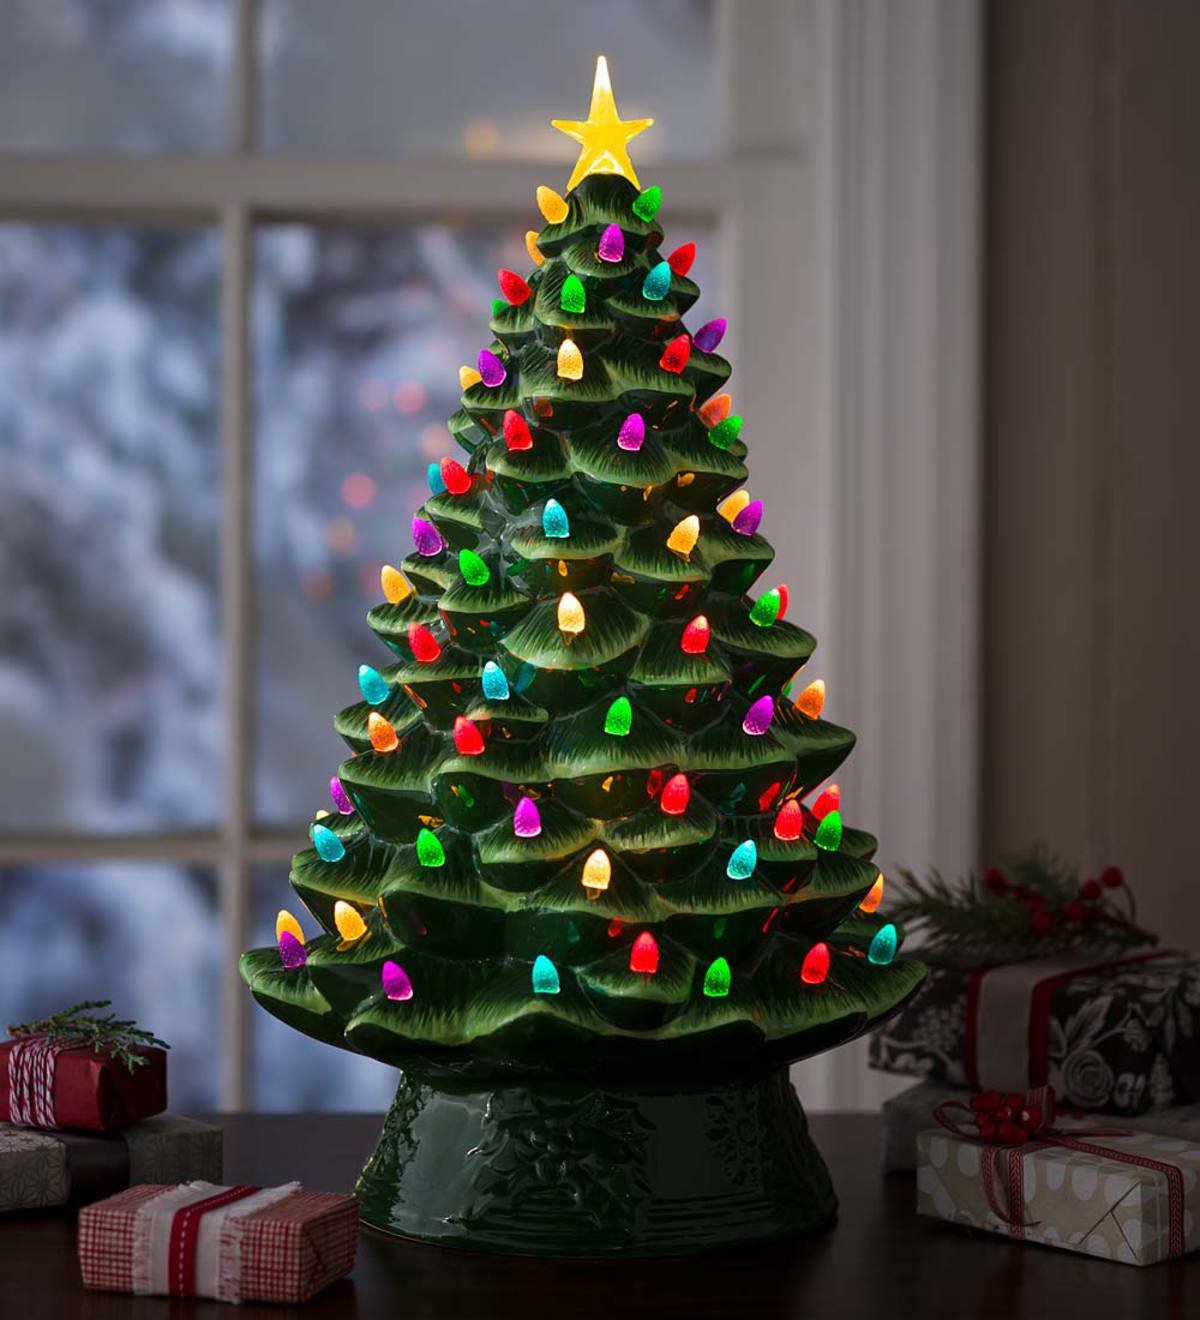 Lighted Ceramic Christmas Tree, Battery-Operated - Green ...